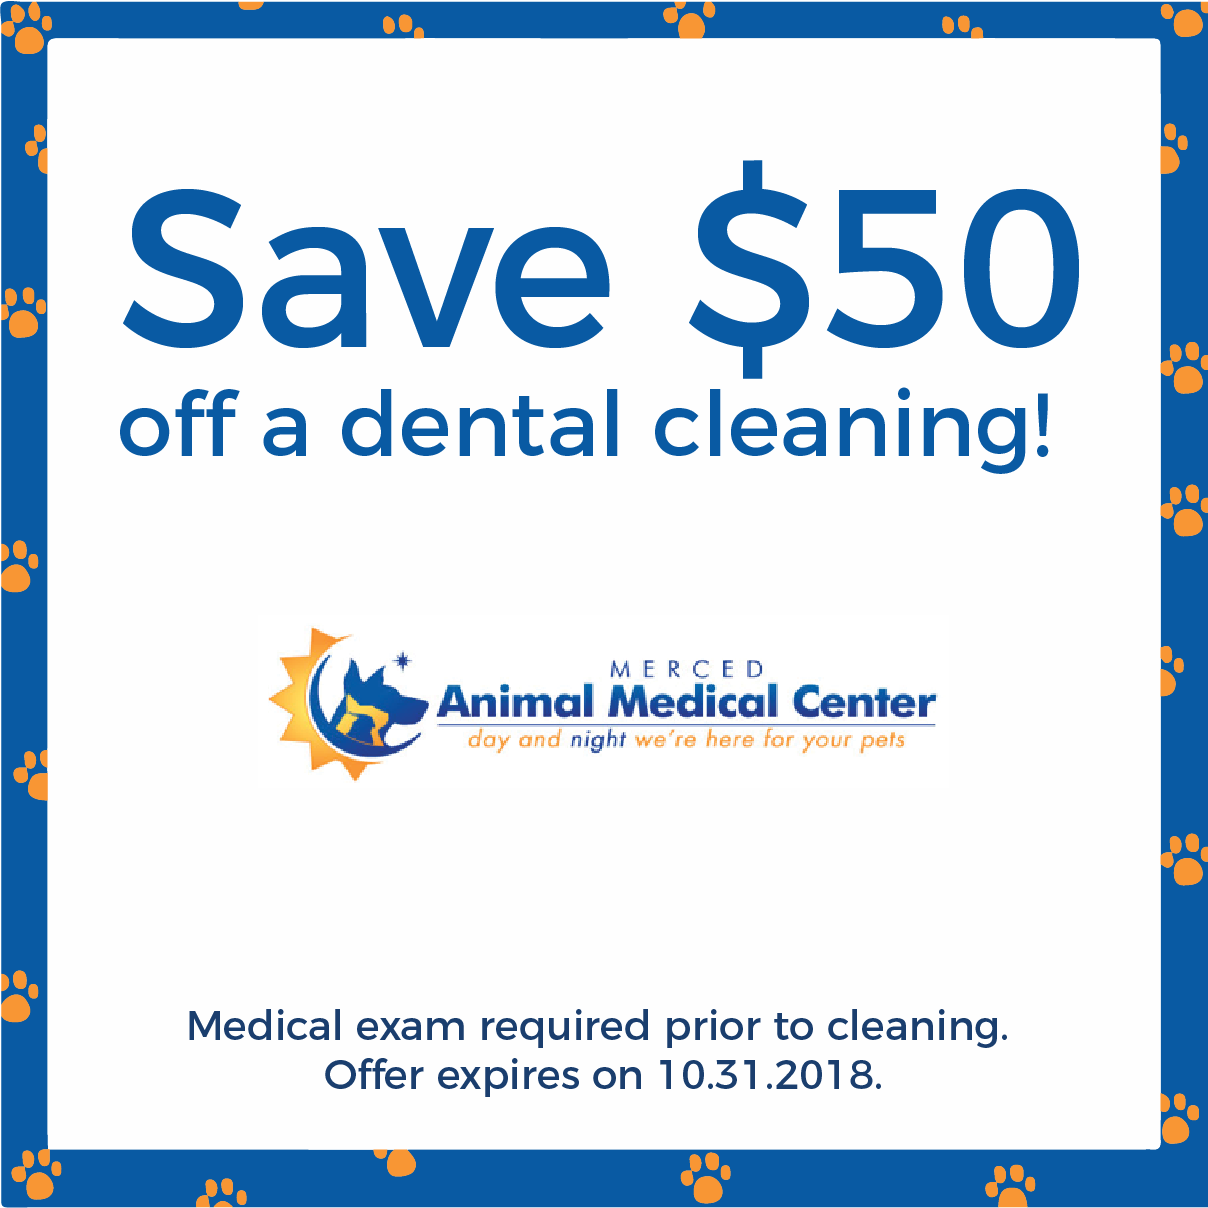 save 50 dollars off a dental cleaning. Medical exam required prior to cleaning. Offer expires October 31